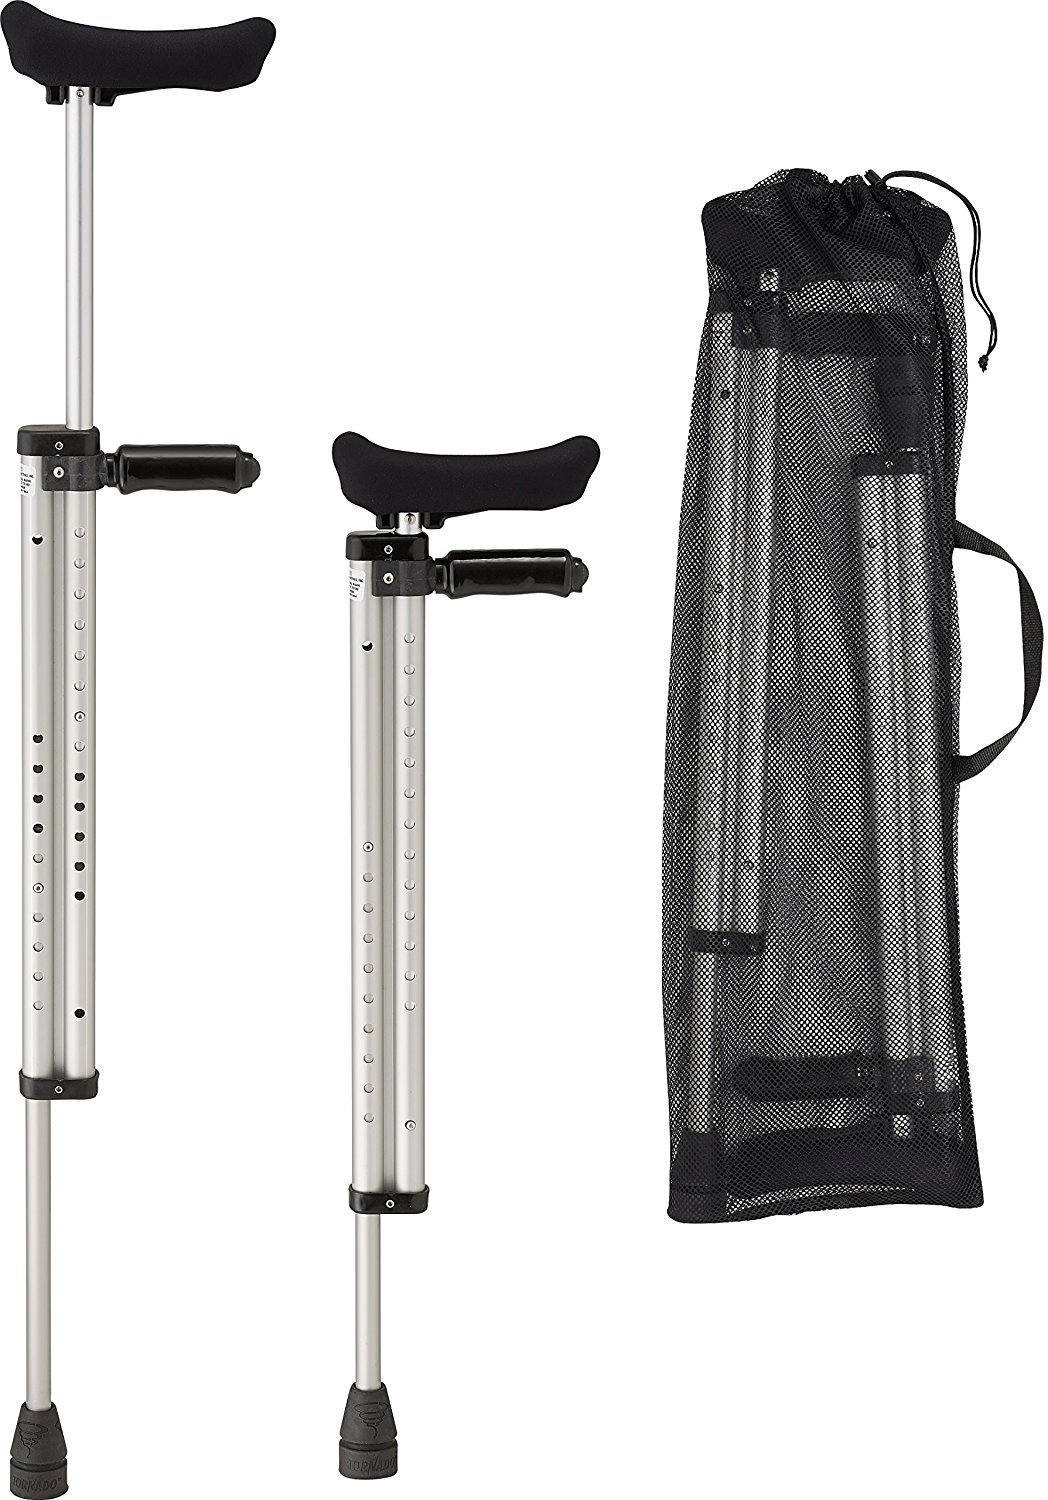 Thomas Fetterman Telescoping Travel Crutches with Poron Hand Grips, Slim Line Underarm Pads, Tornado Tips and Storage Bag, Reduces to 29 Inches, Supports up to 250 Pounds, Pair